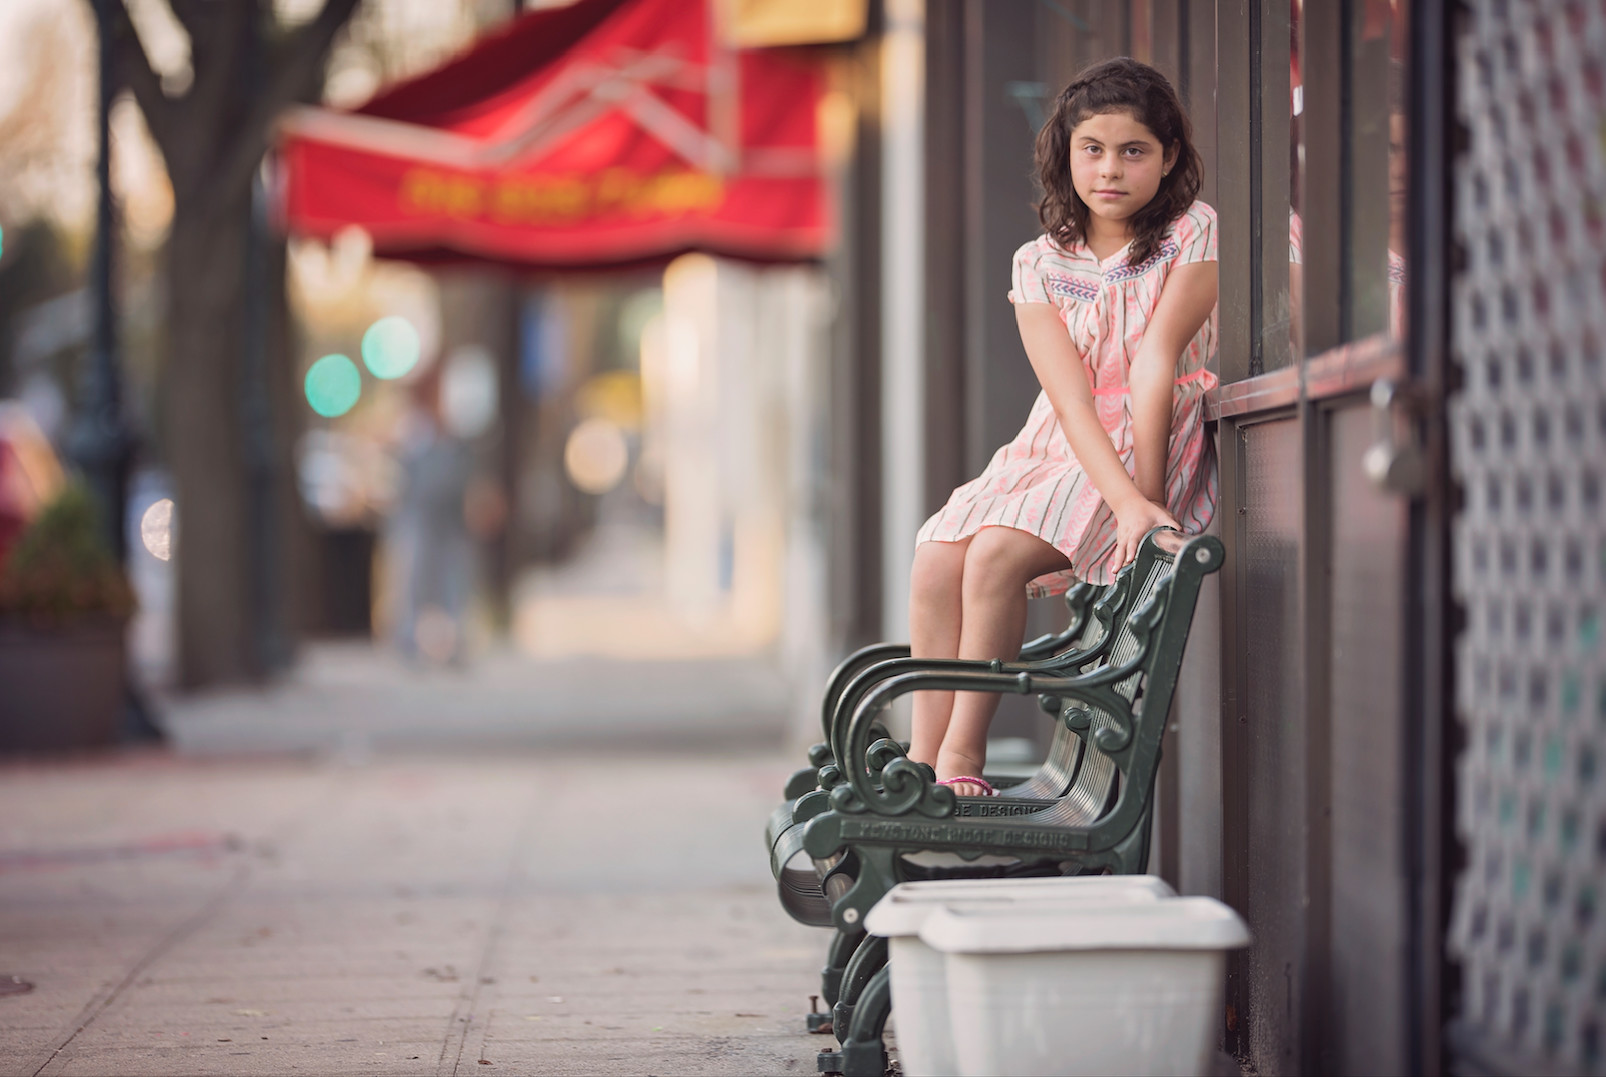 Gulianna Barrera, 12, Marcelo's niece, posed in front of the iconic Walt Itgen's Ice Cream Parlour storefront in Valley Stream.